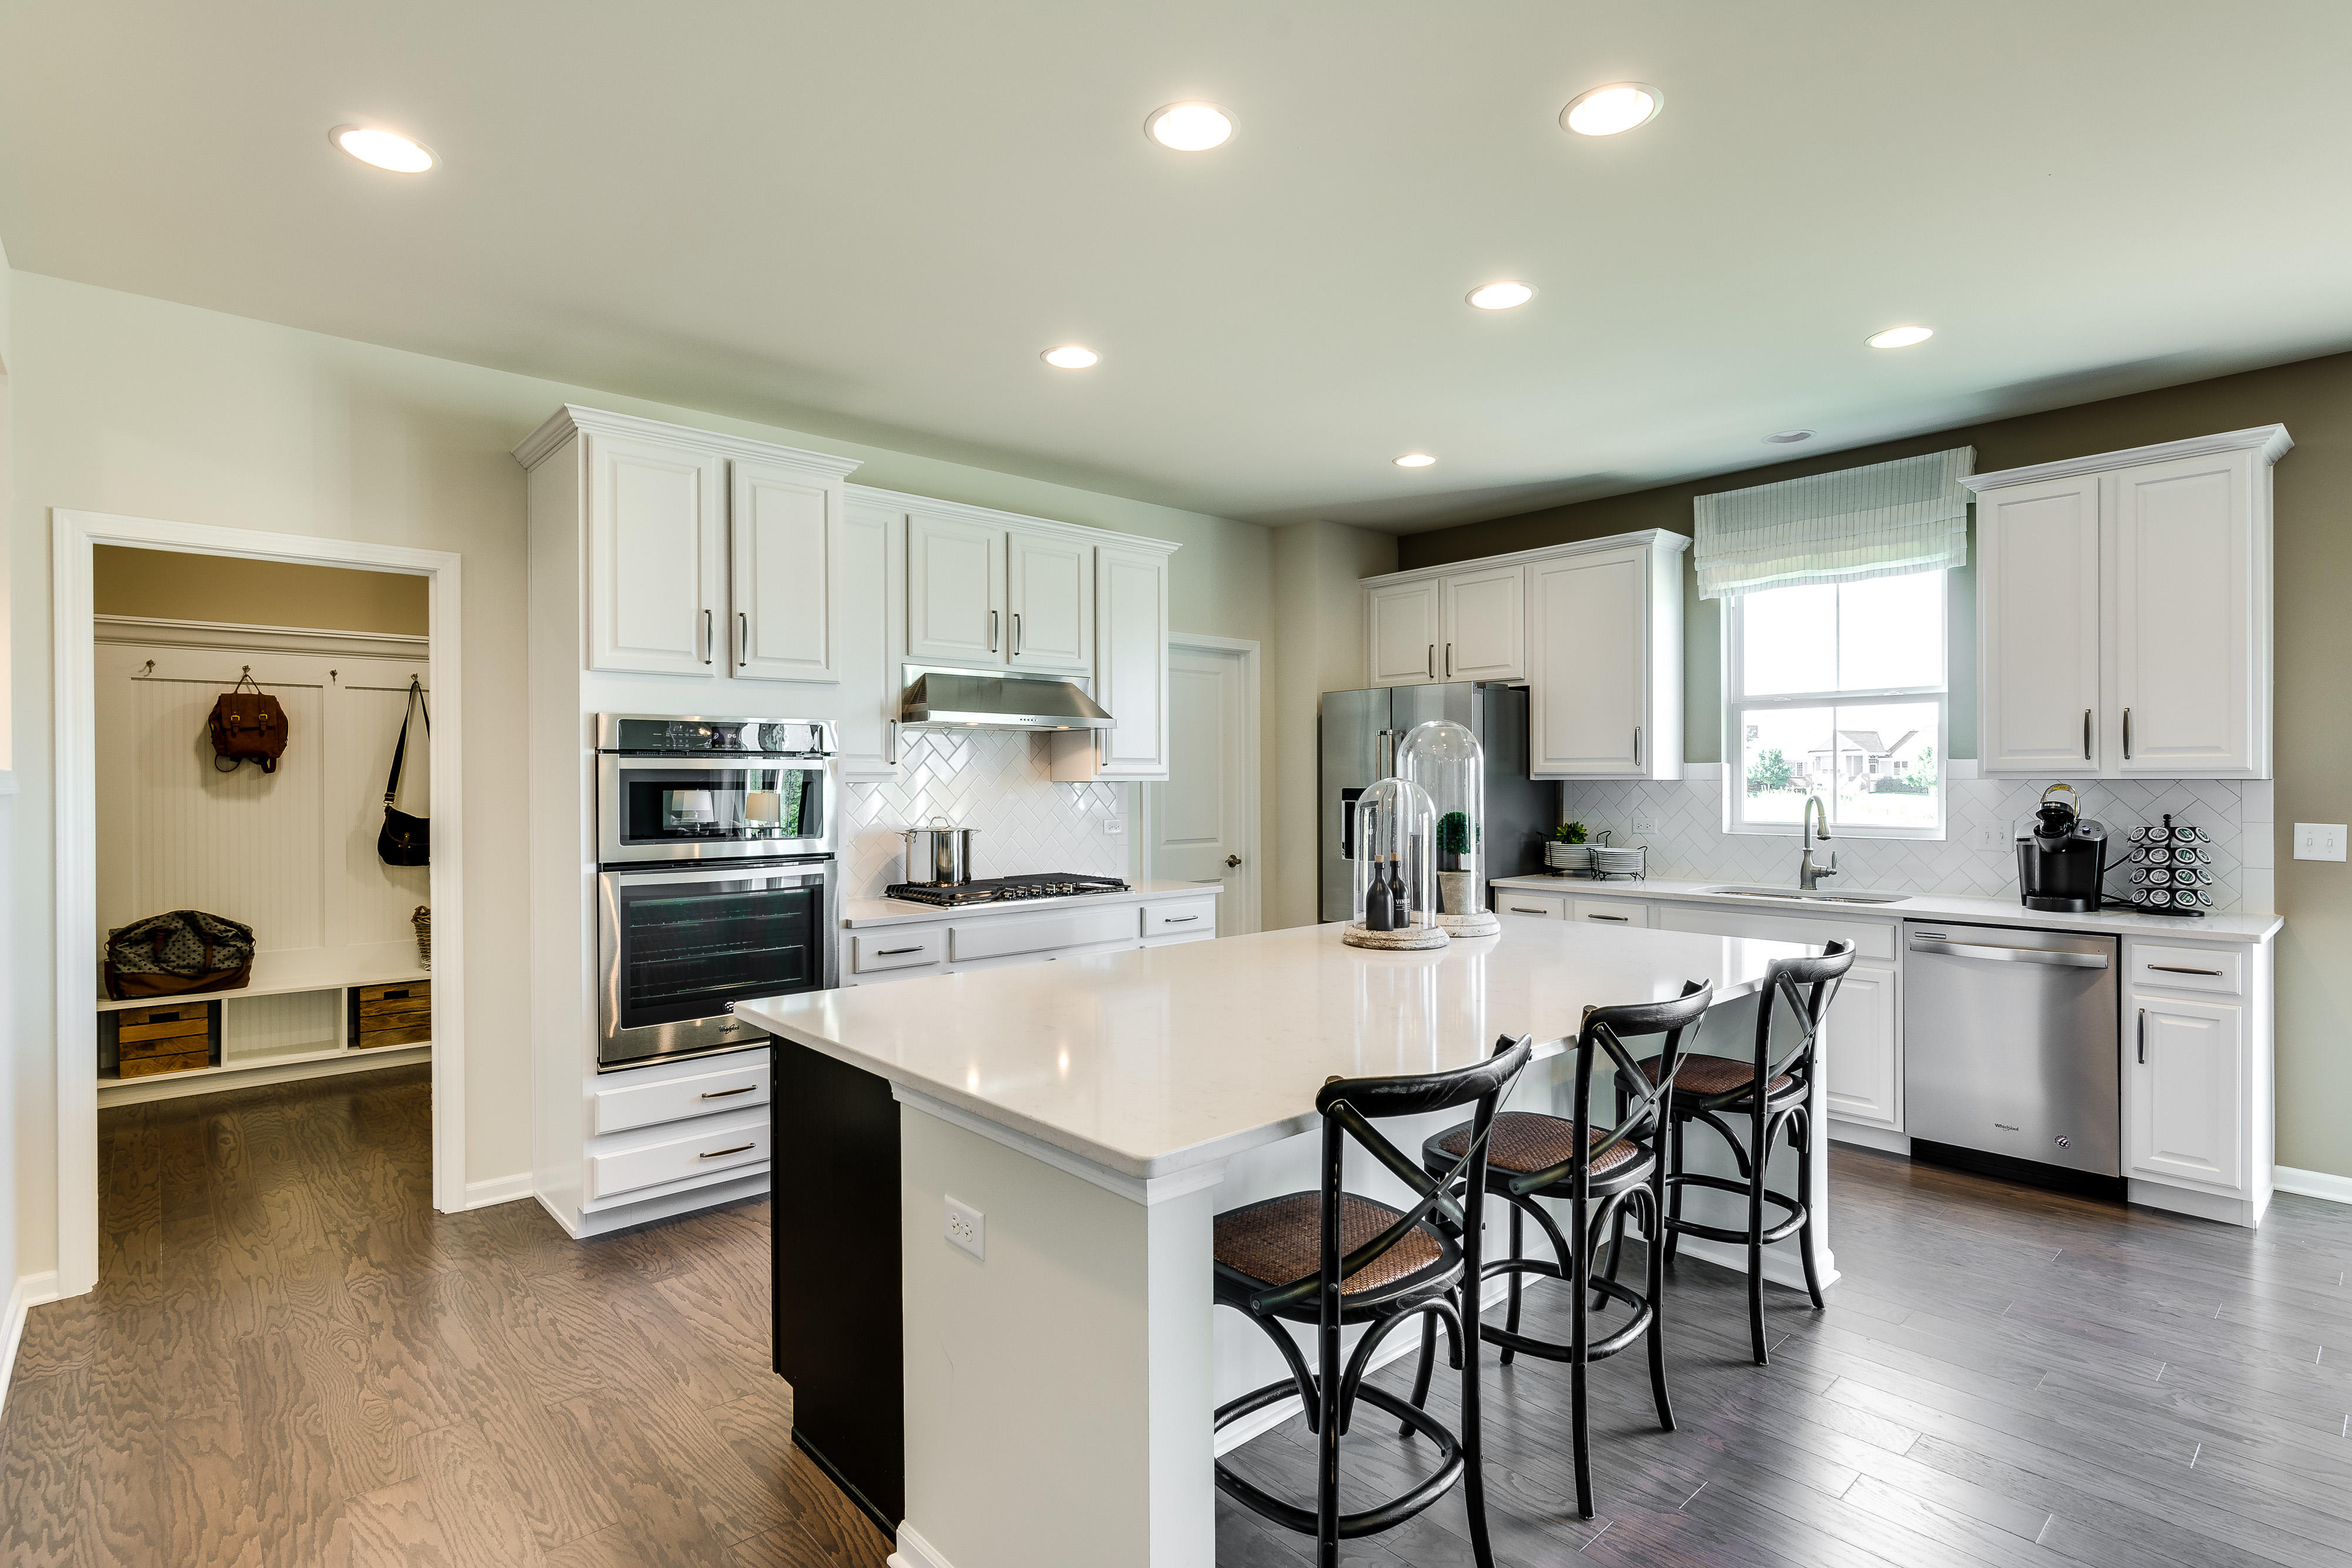 Finley Park by Pulte Homes image 8